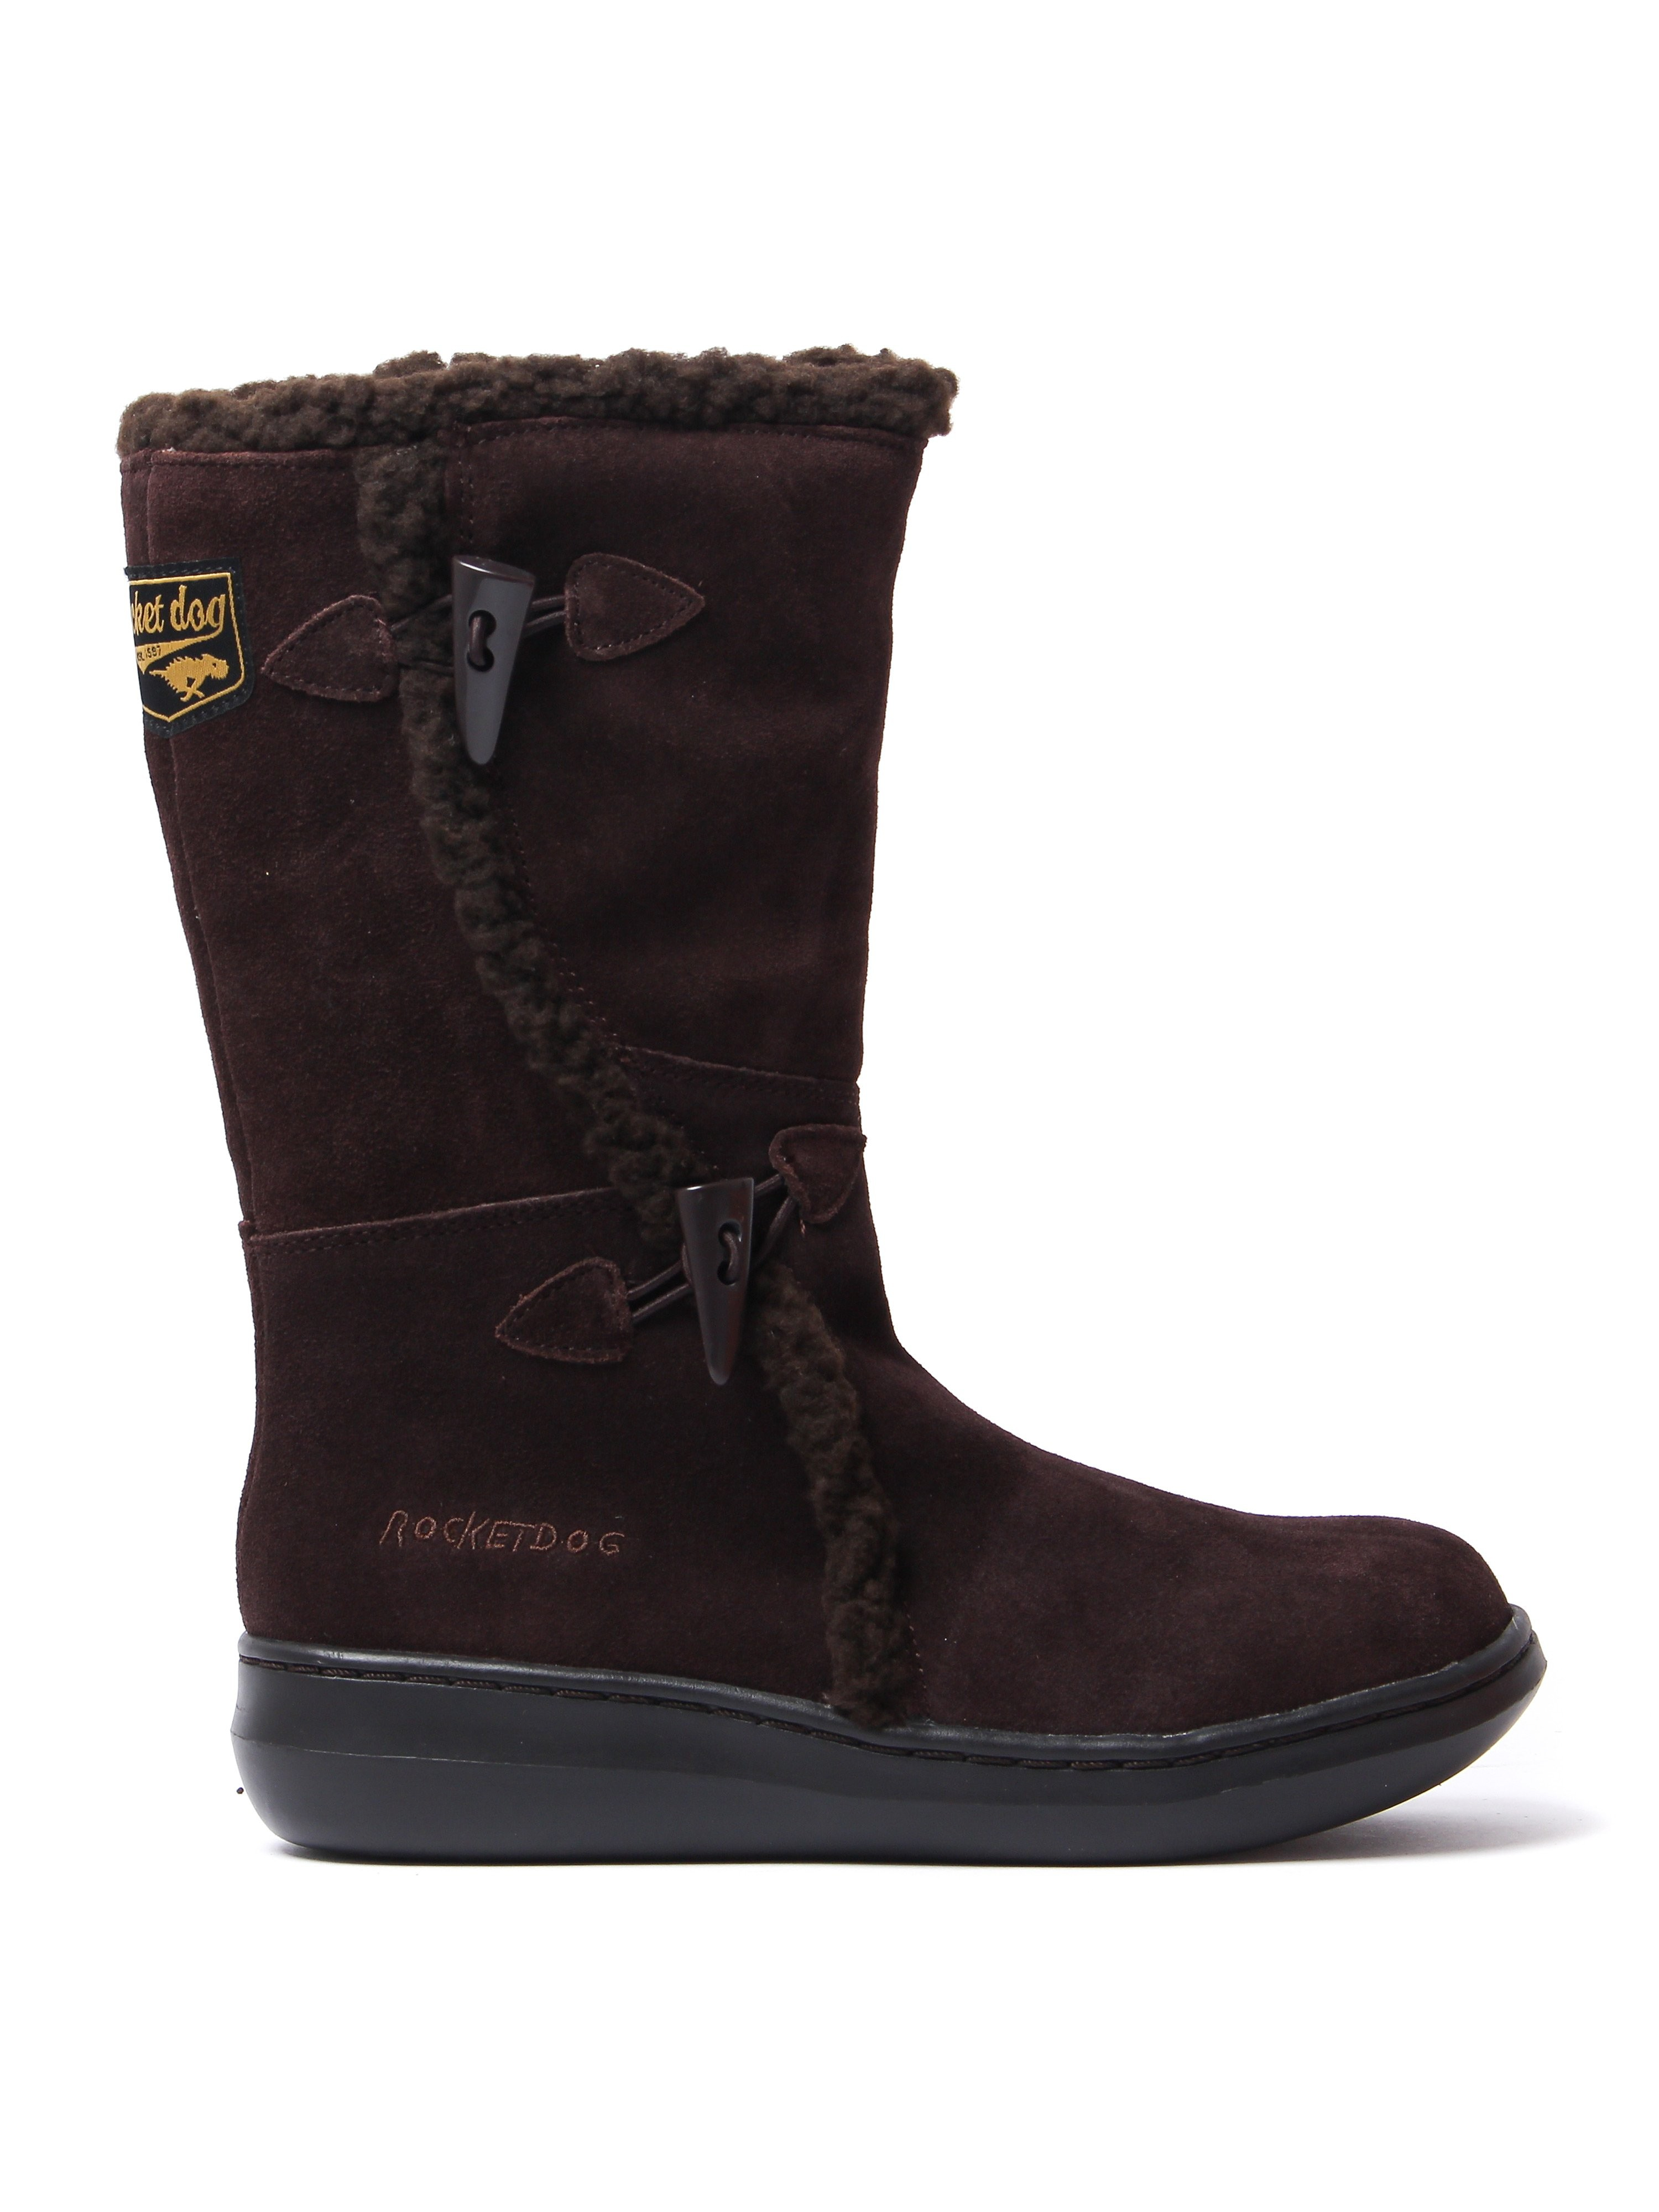 Rocket Dog Women's Slope Boots - Chocolate Suede